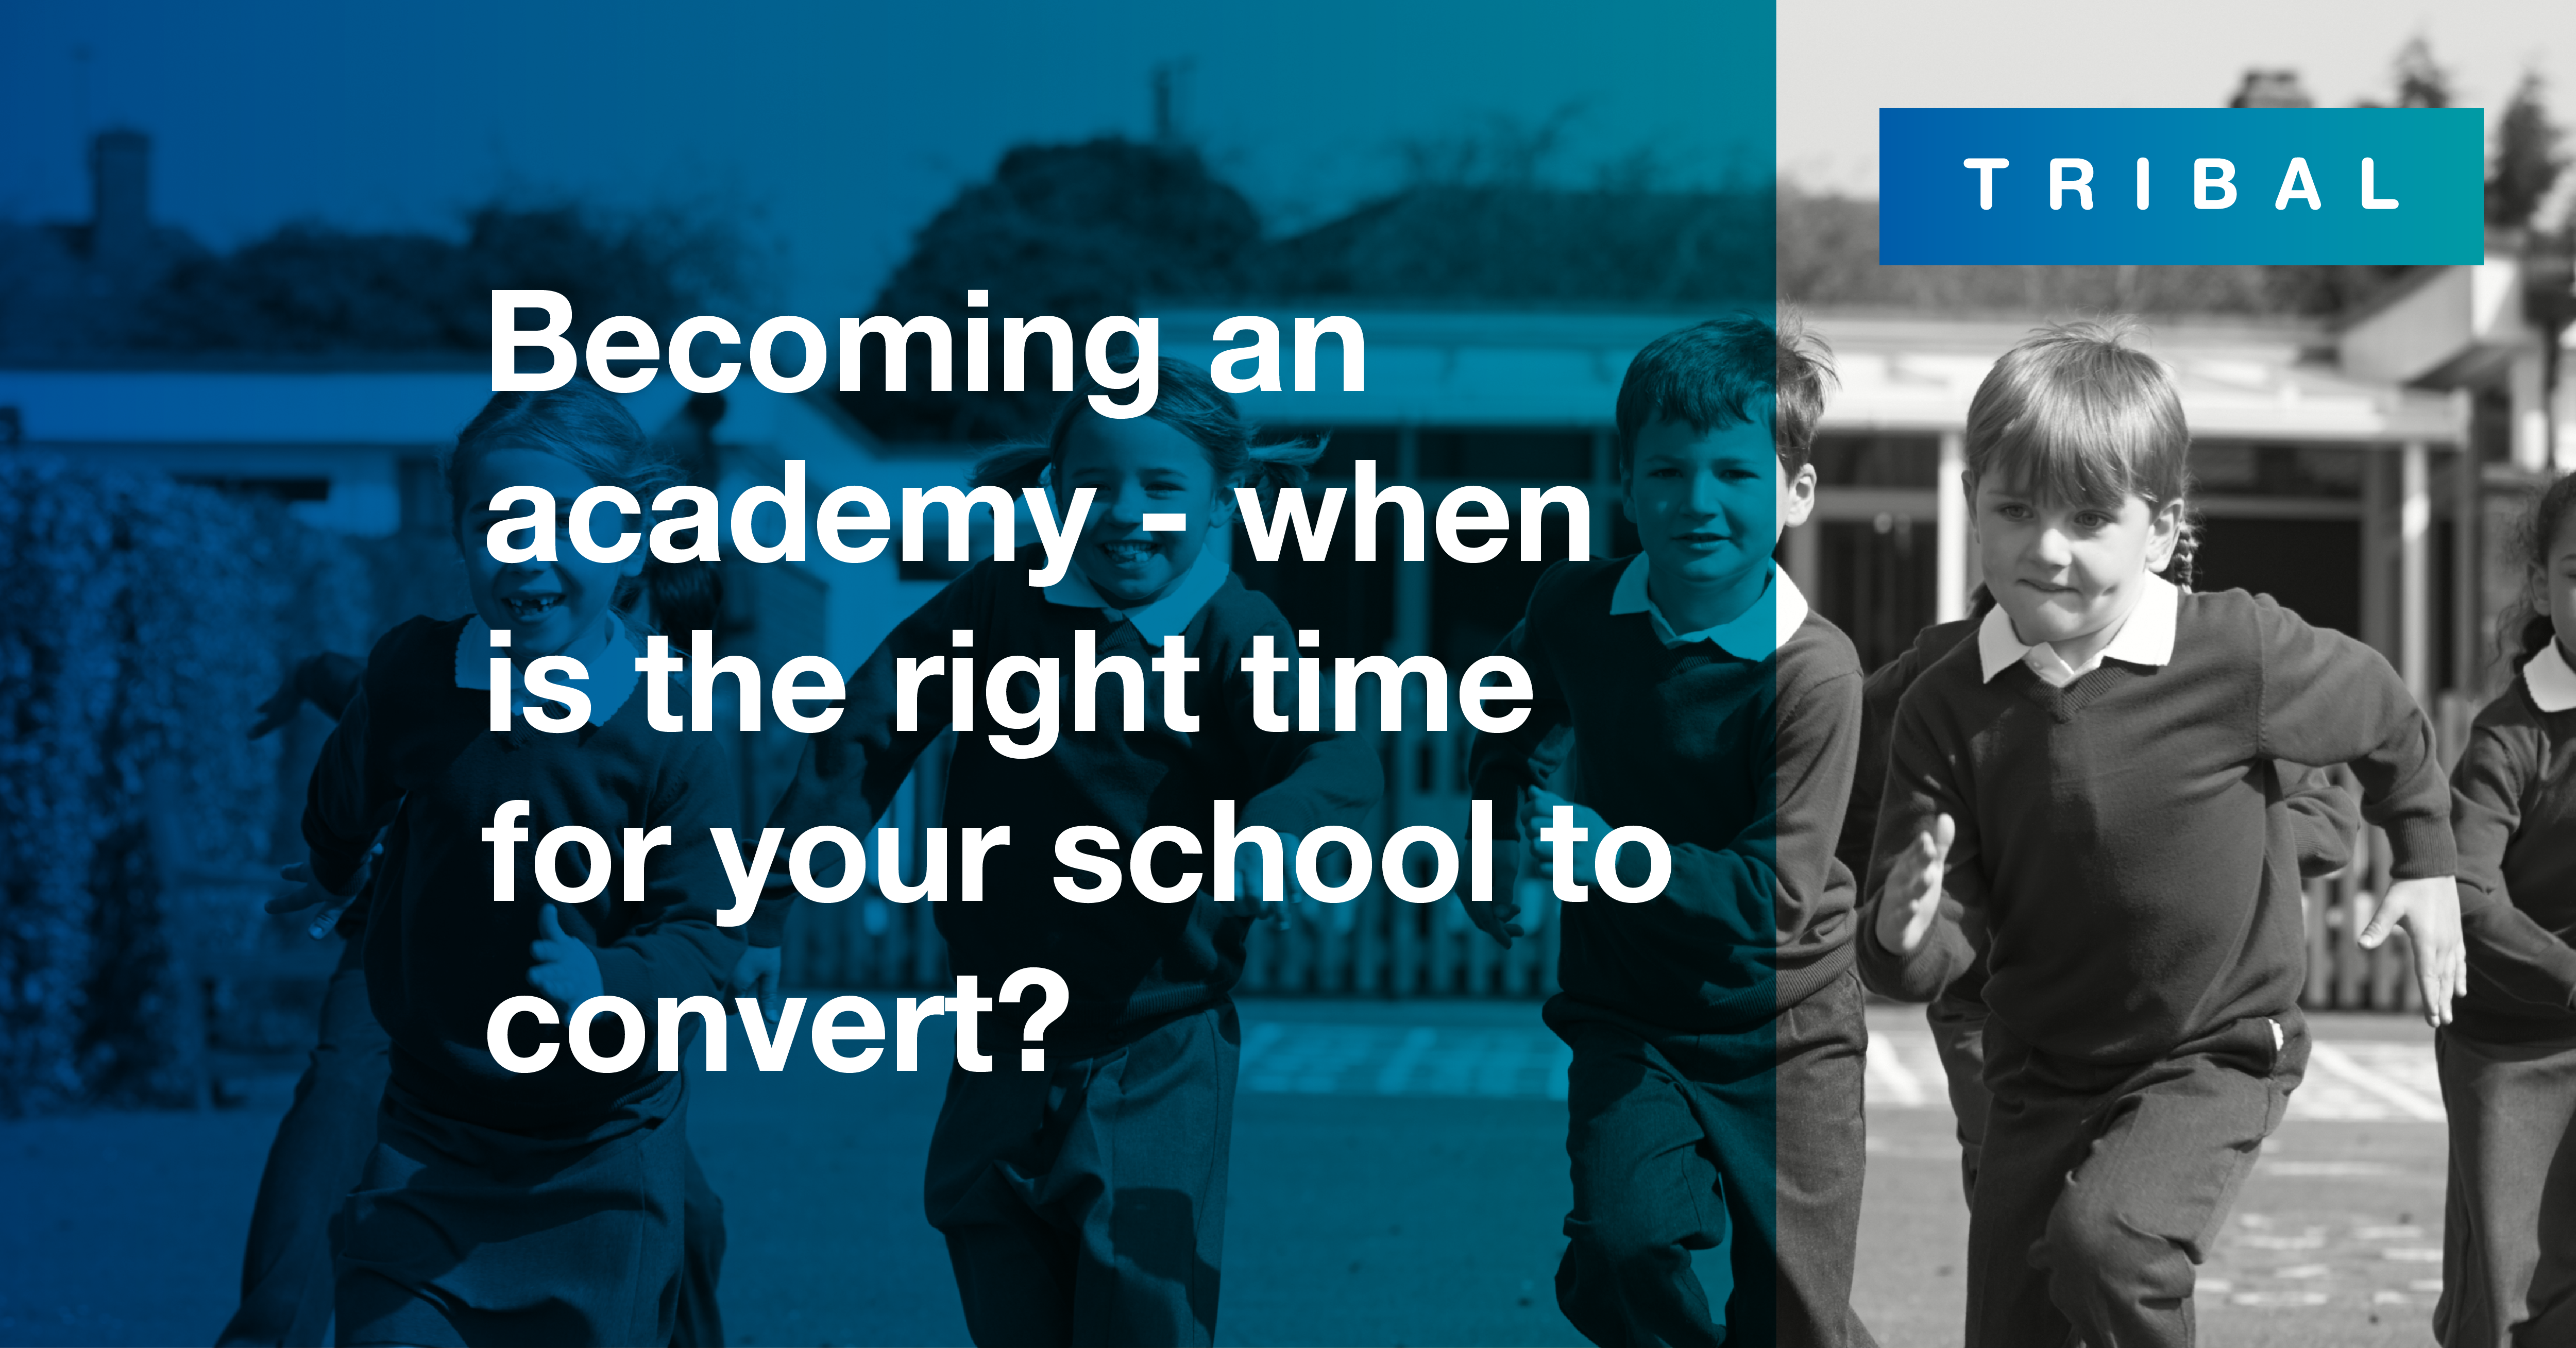 Becoming an academy - when is the right time for your school to convert?